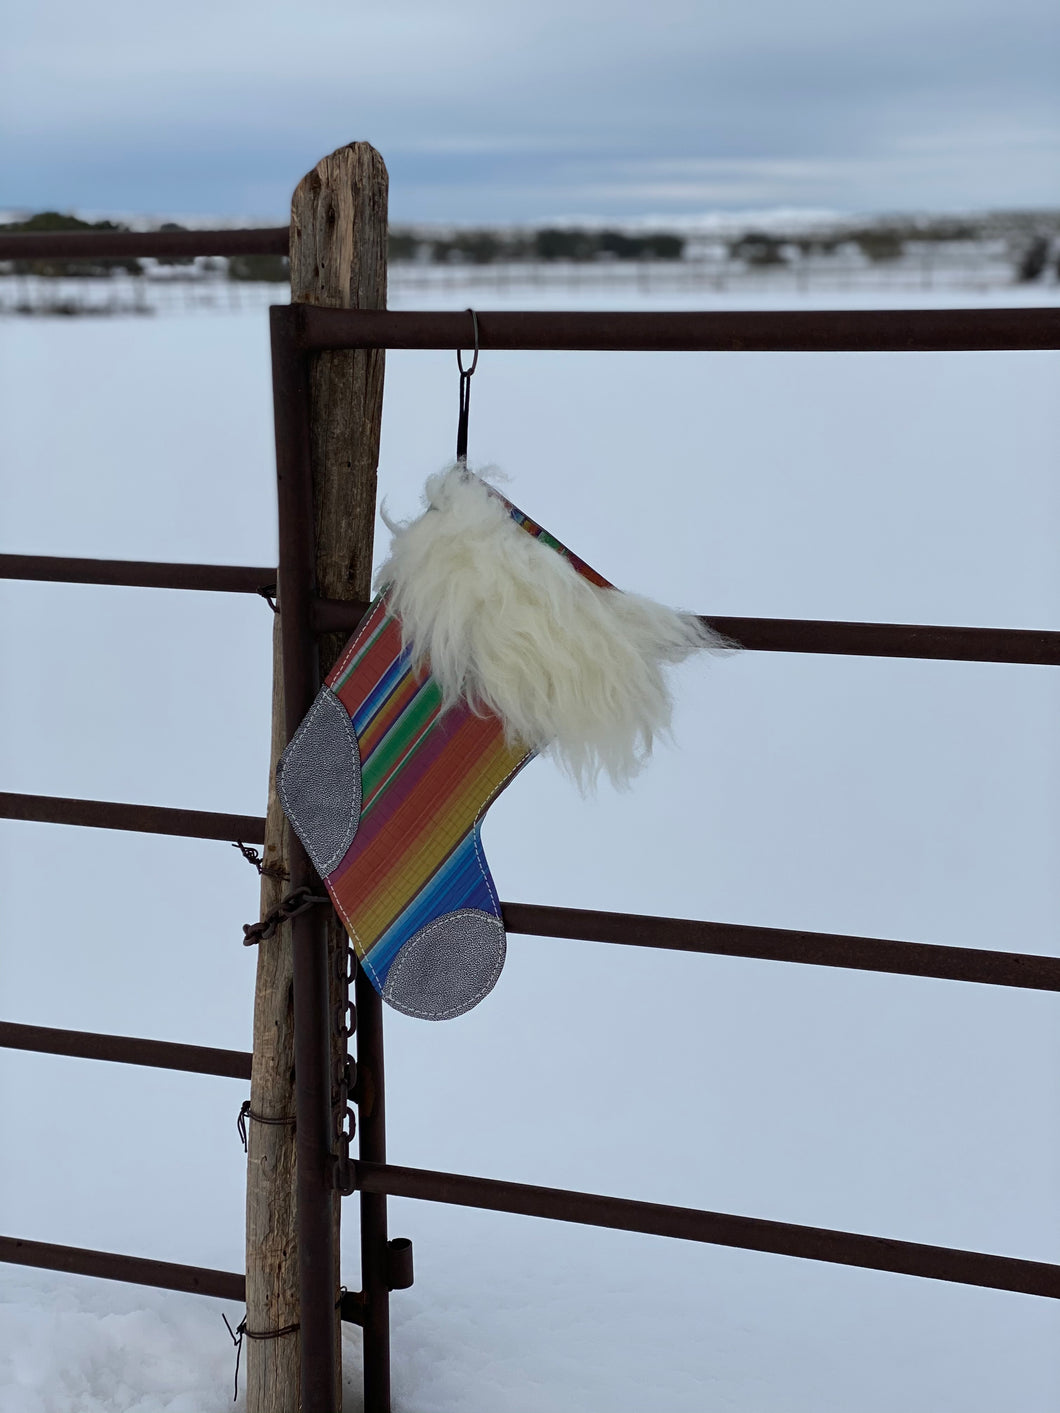 Serape and Shiny Black Stocking